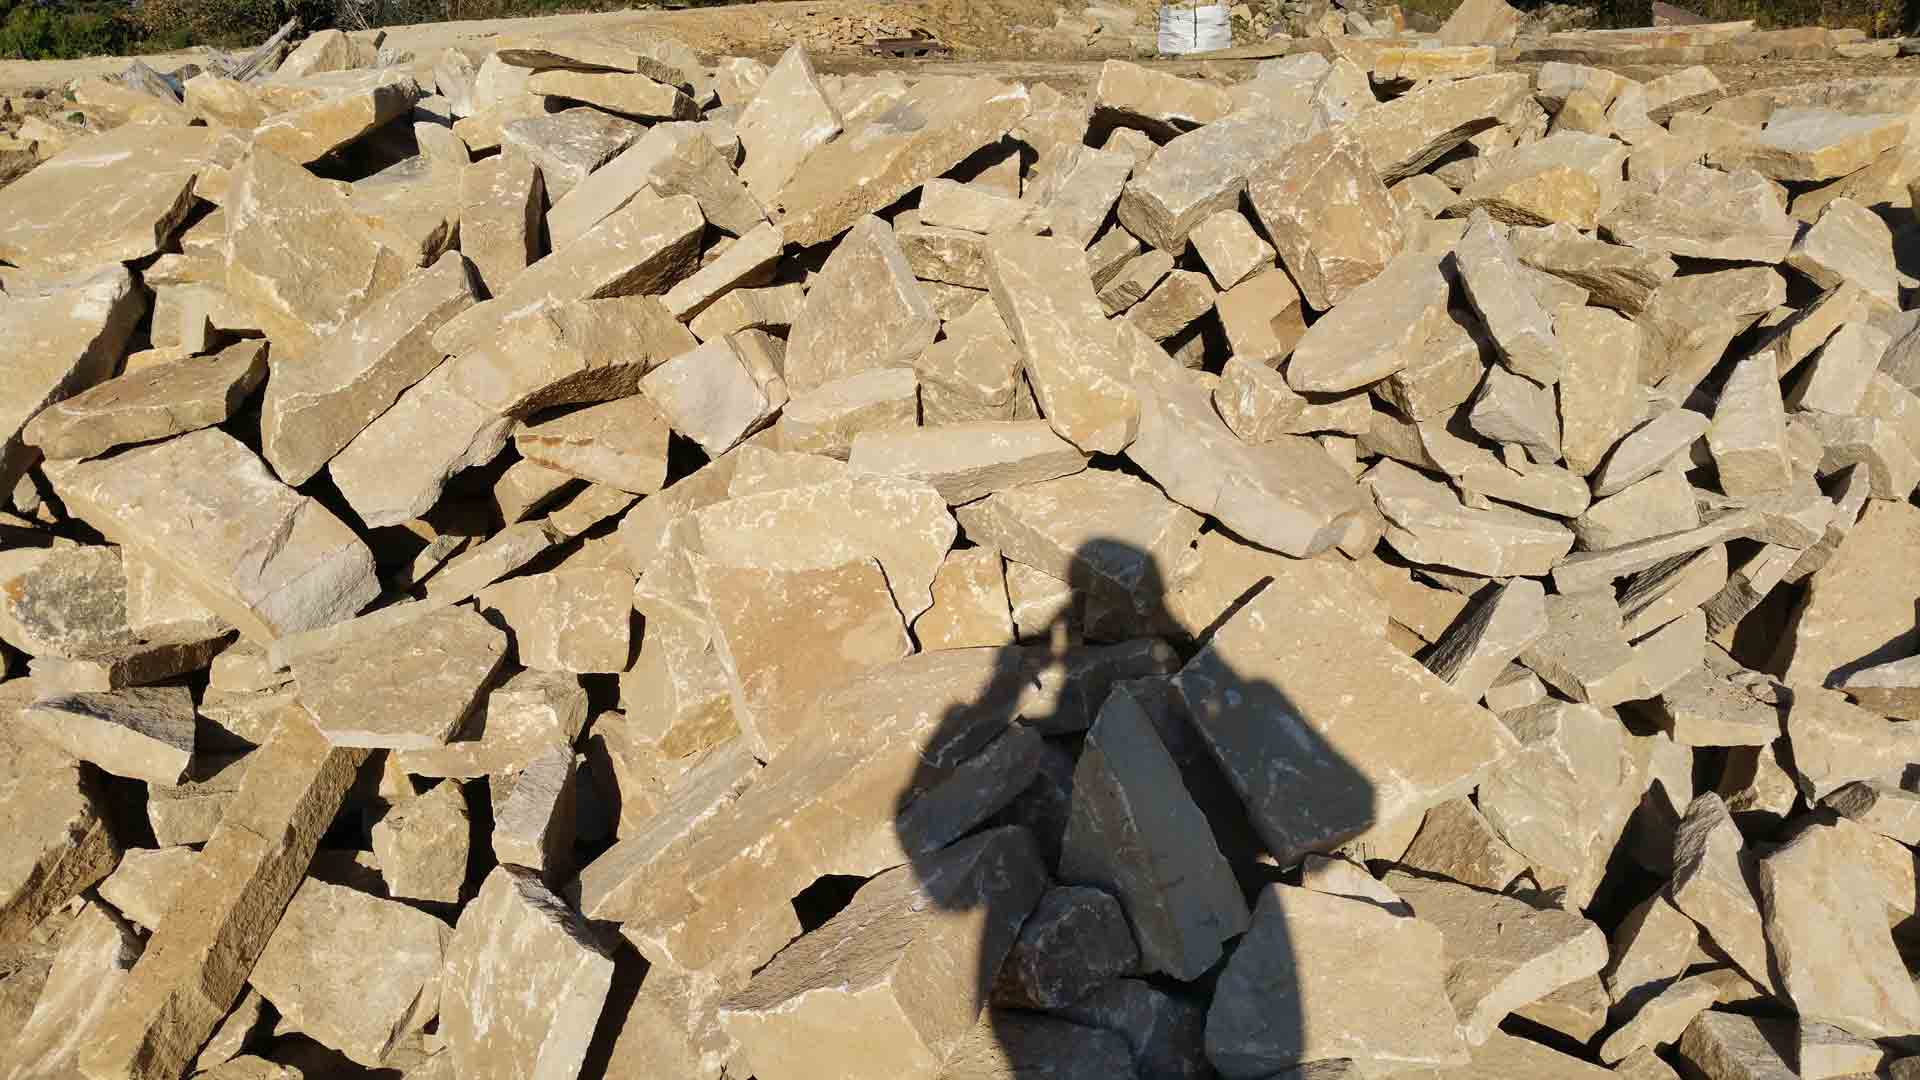 Sandstone Rubble